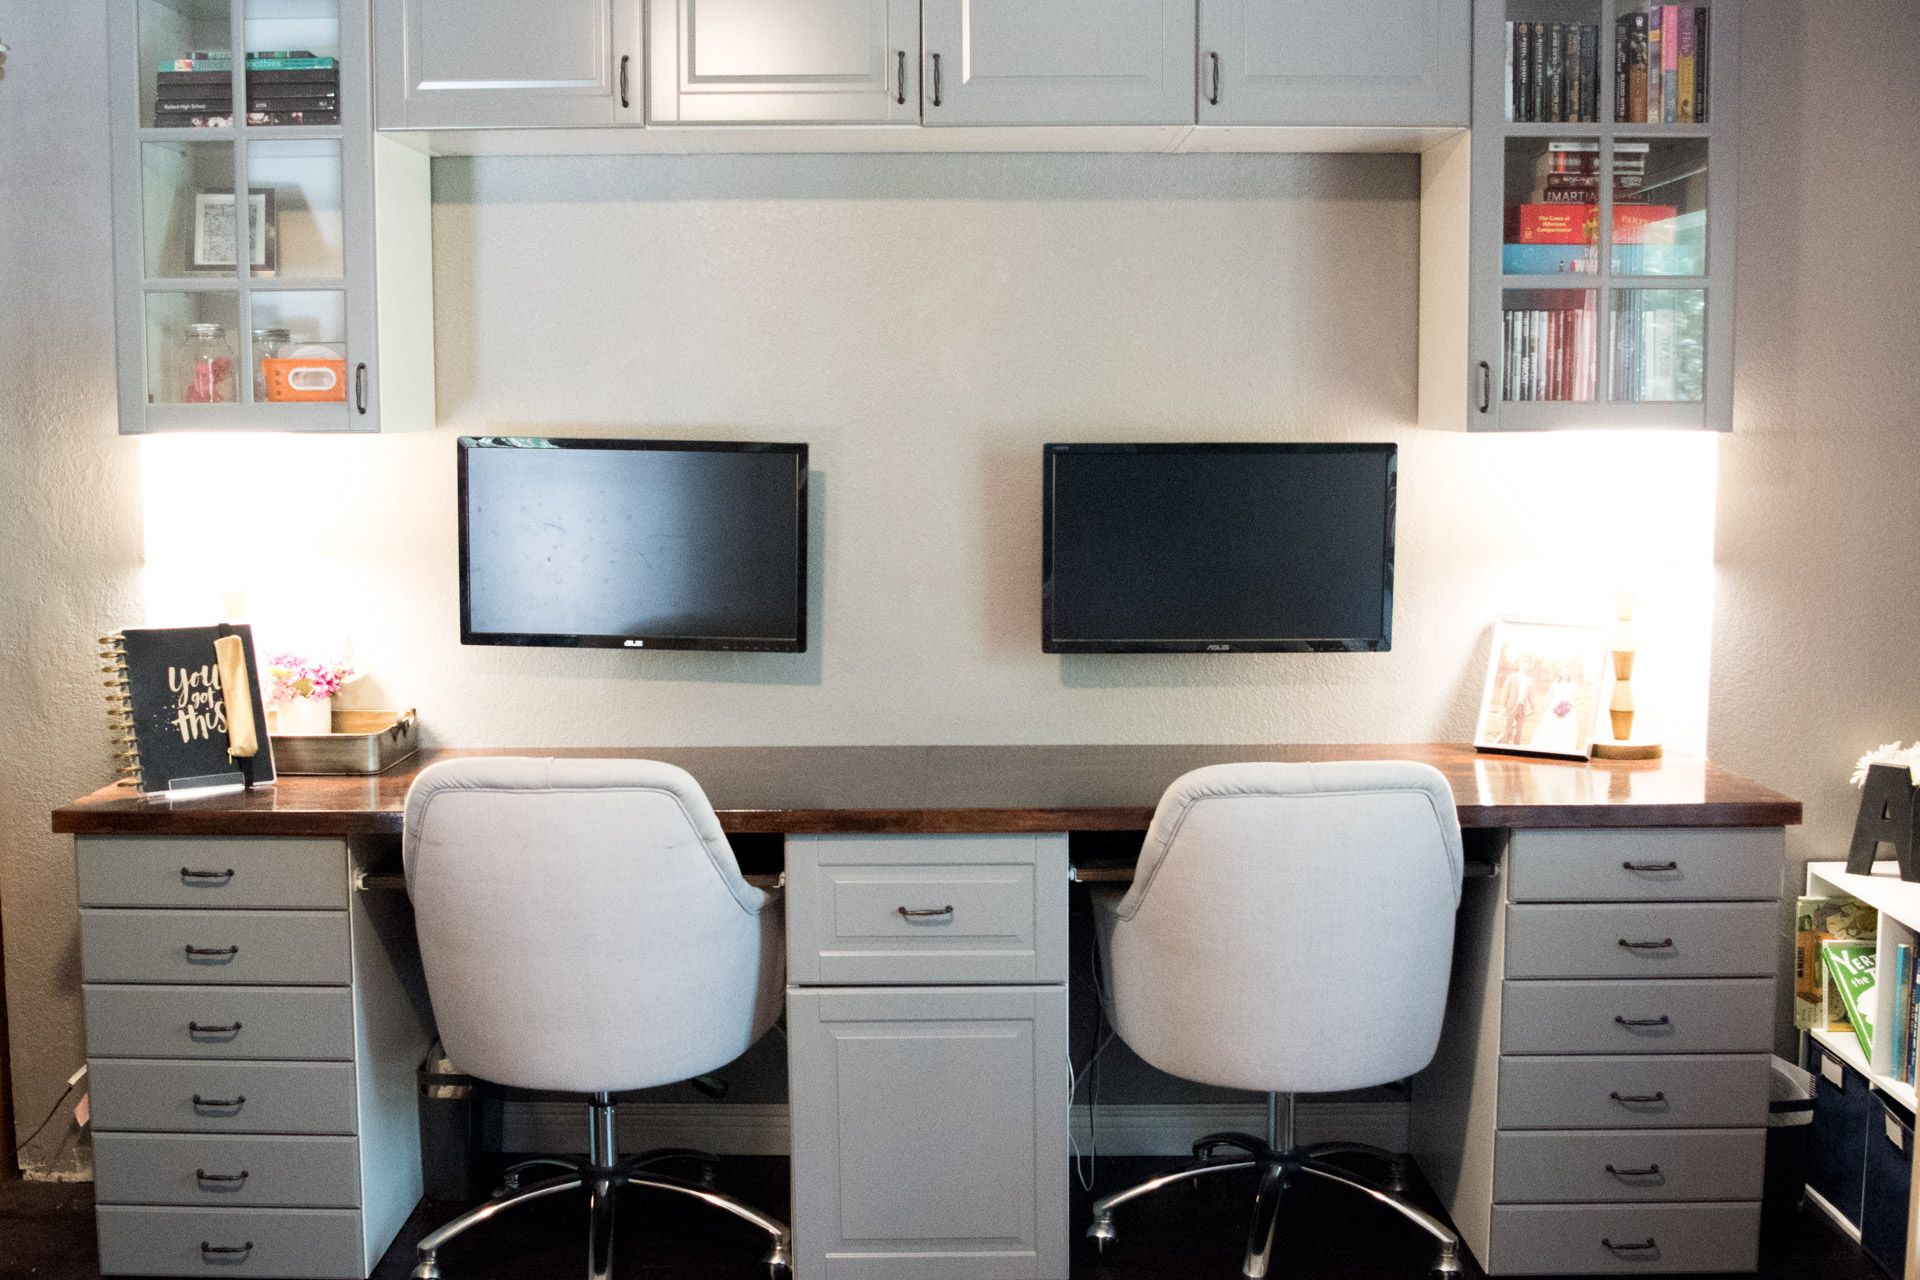 How To Make A Desk From Kitchen Cabinets Part Two Diy Without Fear In 2020 Custom Desk Home Desk